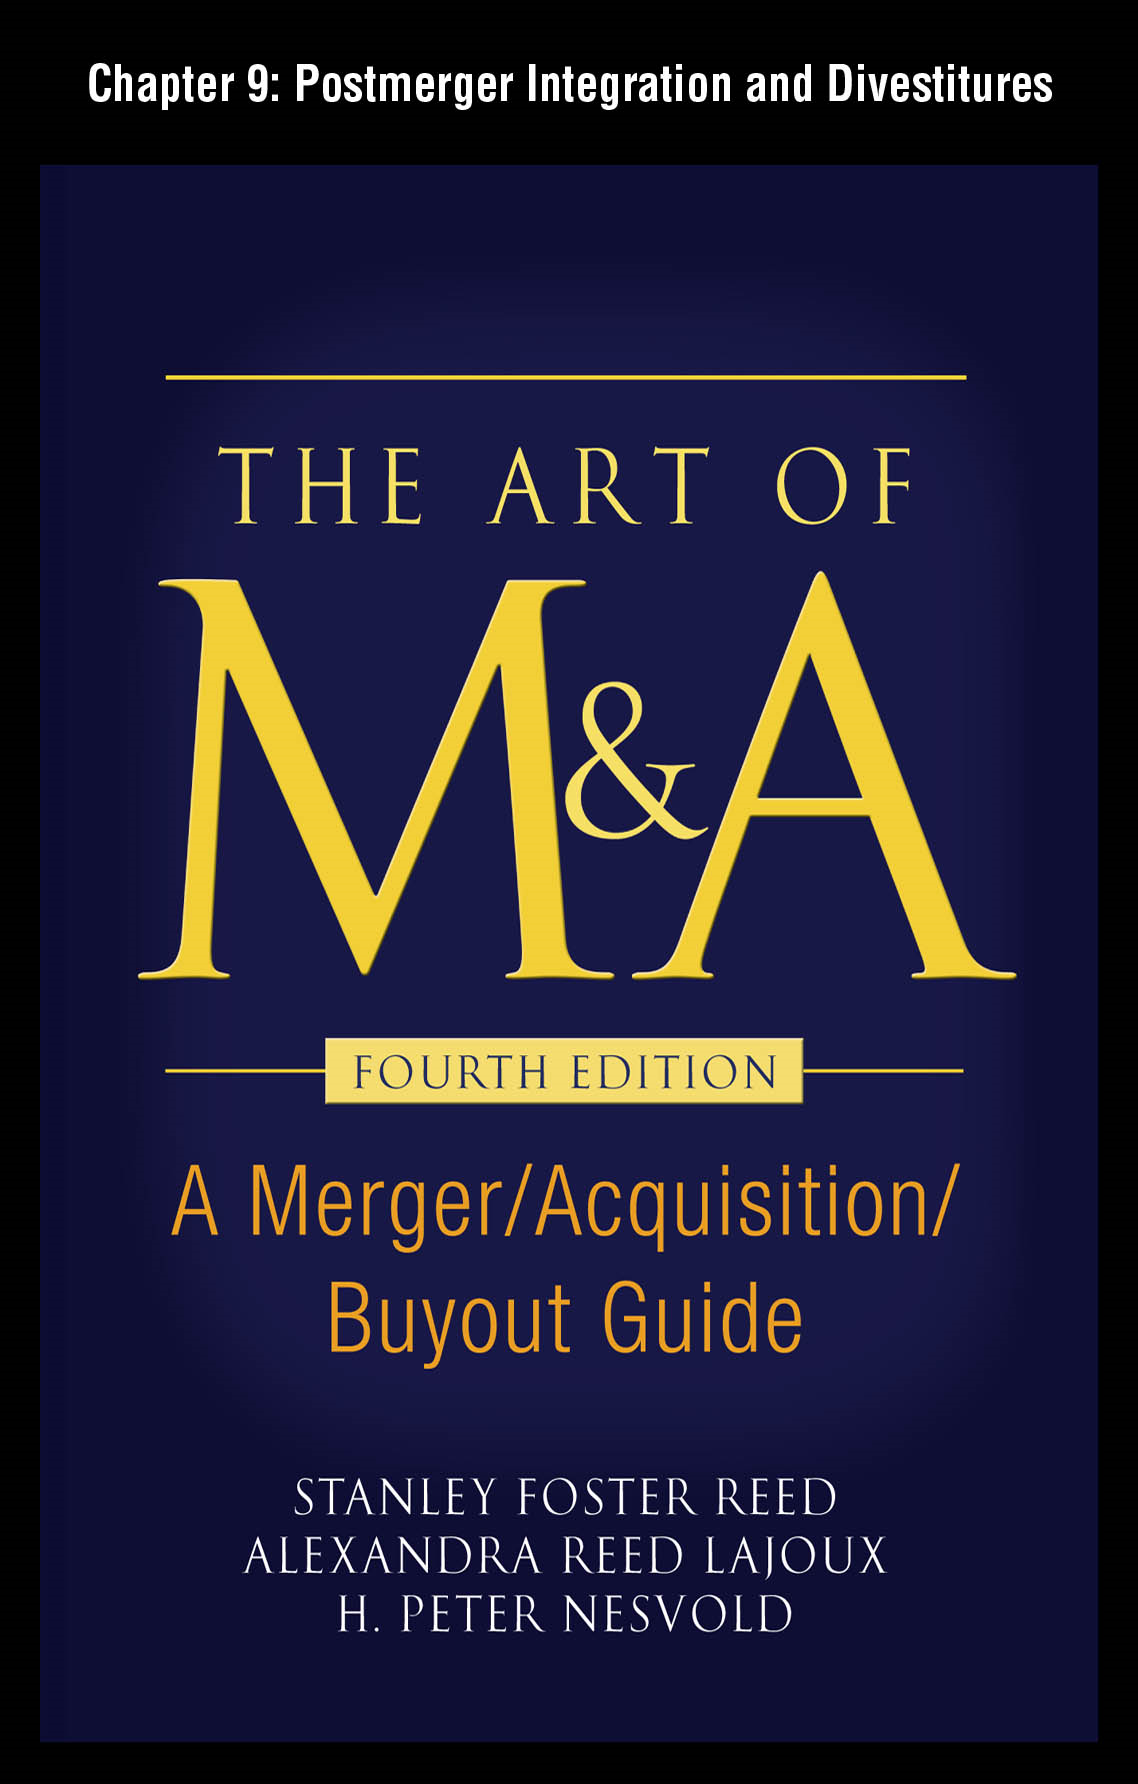 The Art of M&A, Fourth Edition, Chapter 9 - Postmerger Integration and Divestitures